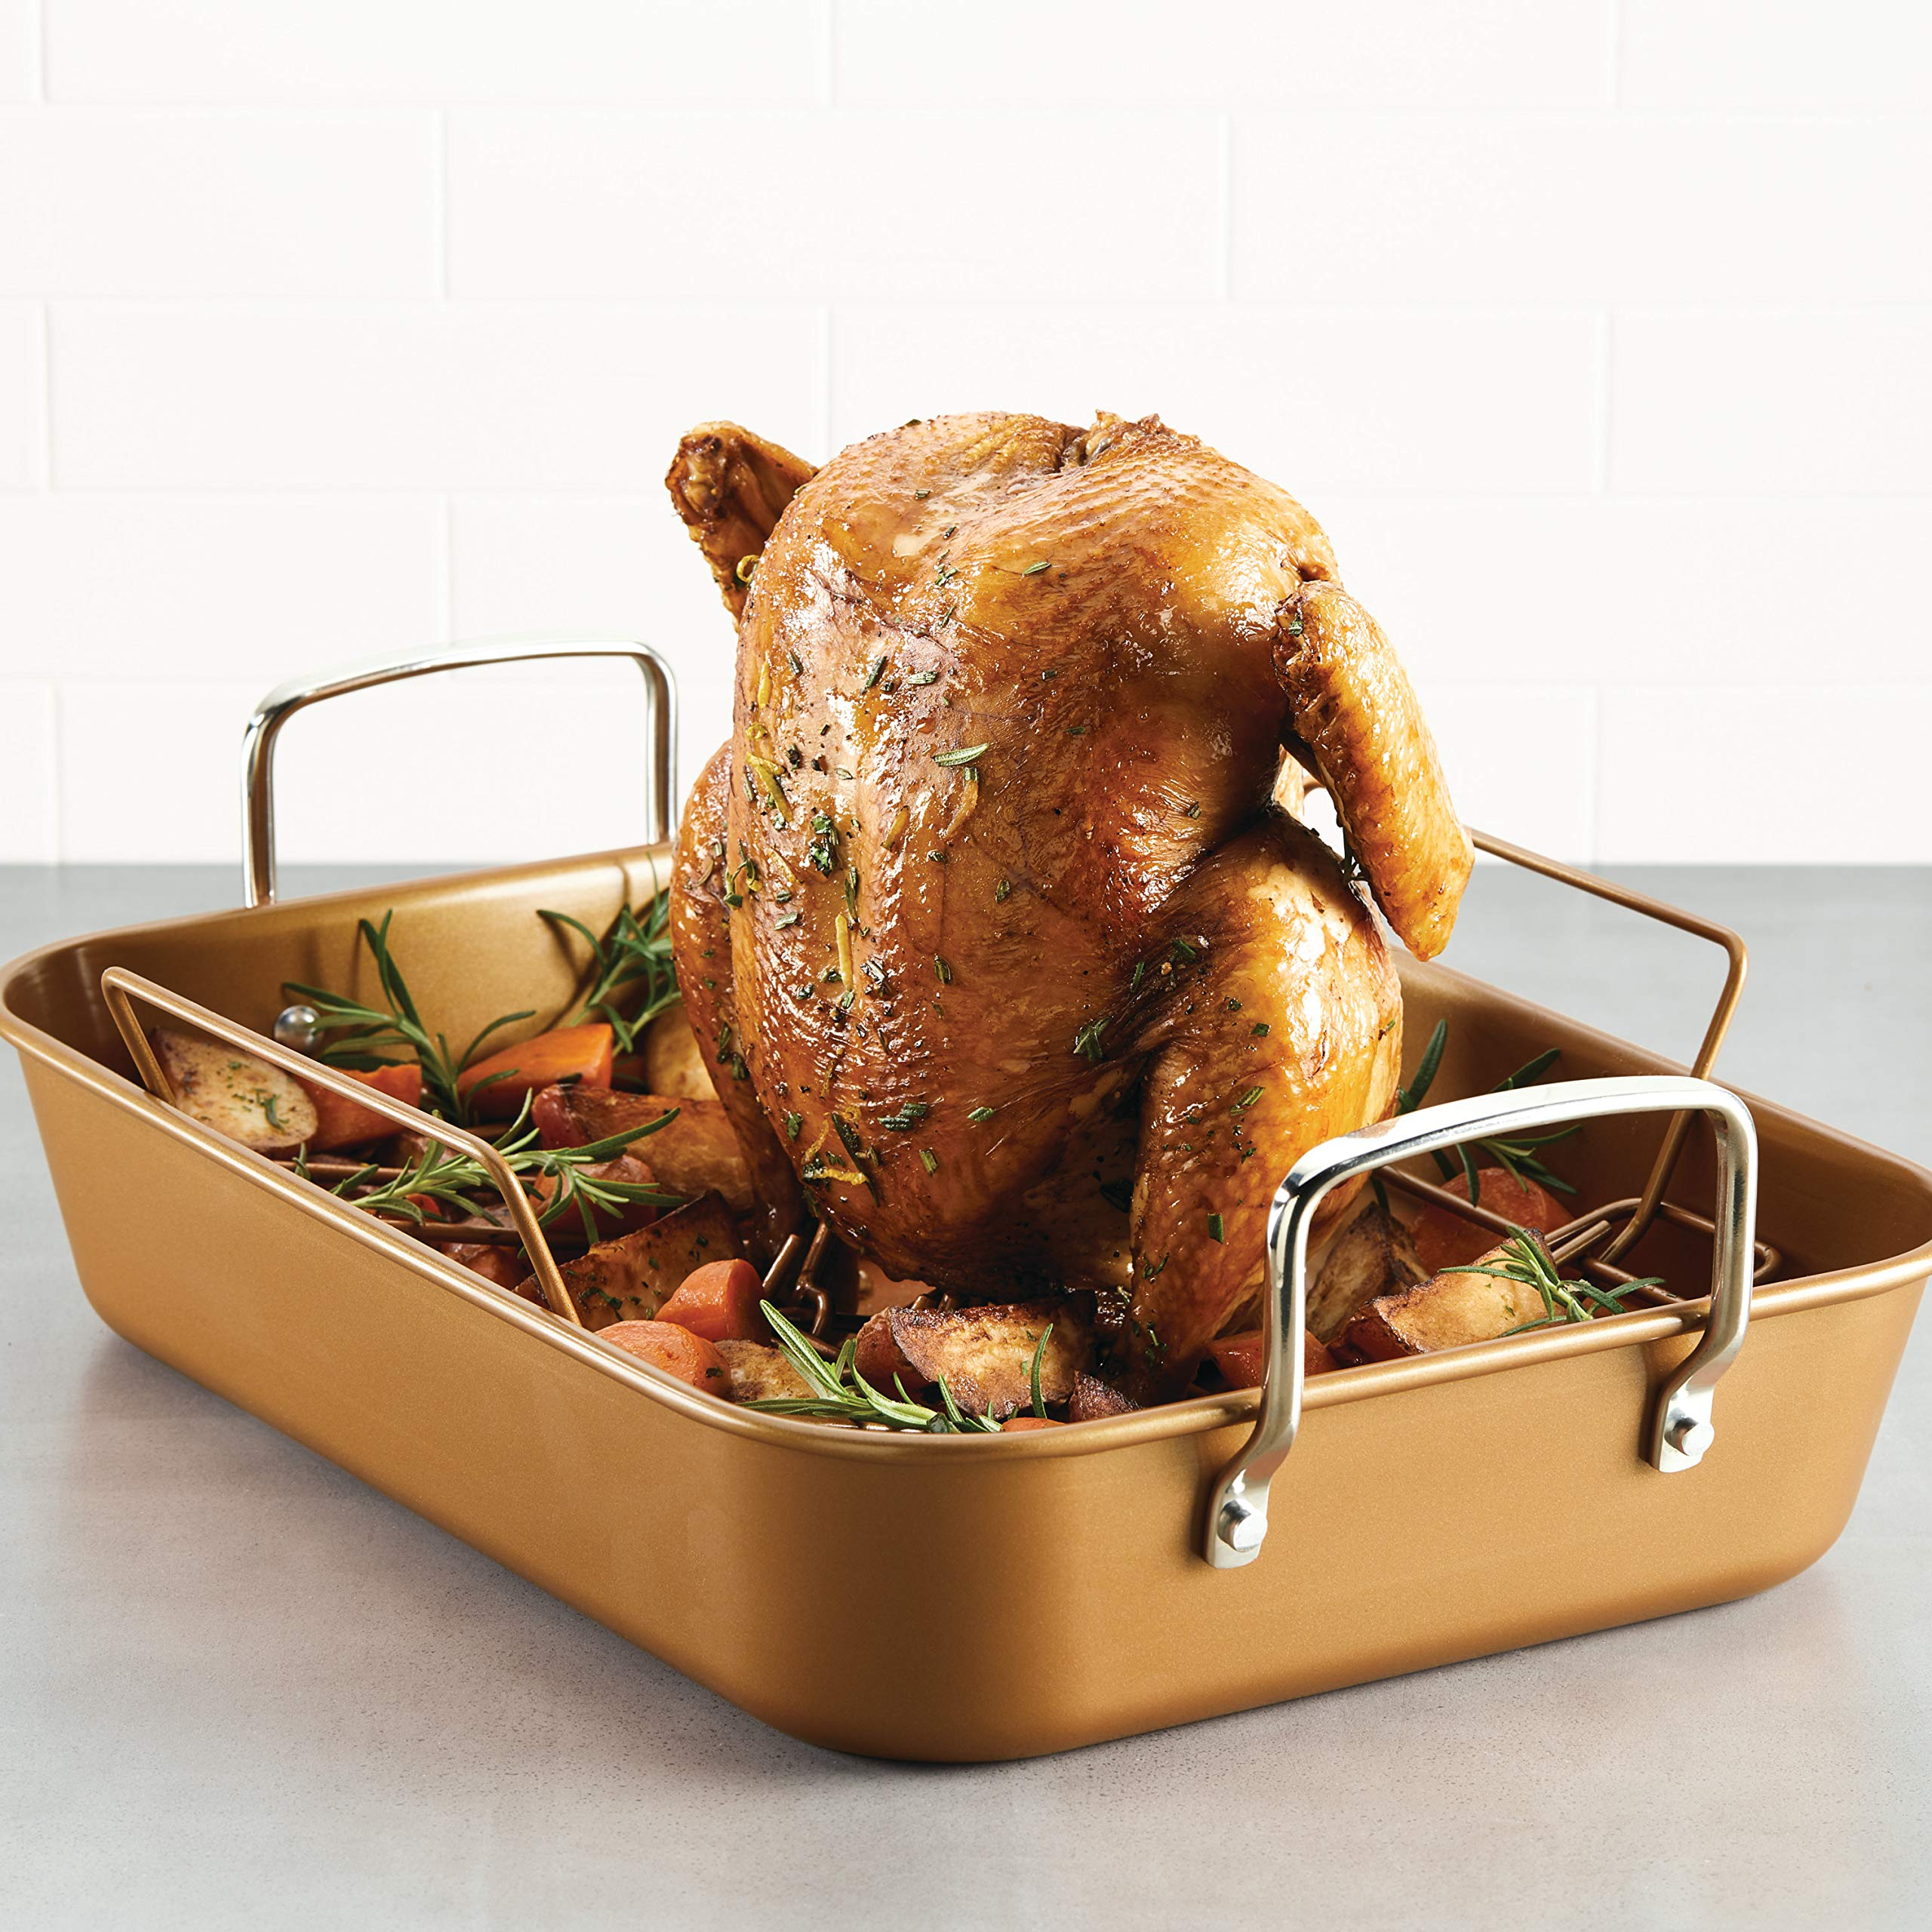 Ayesha Curry 47792 11'' x 15'' Rack Steel Roaster, 11 Inch x 15 Inch, Copper by Ayesha Curry Kitchenware (Image #6)